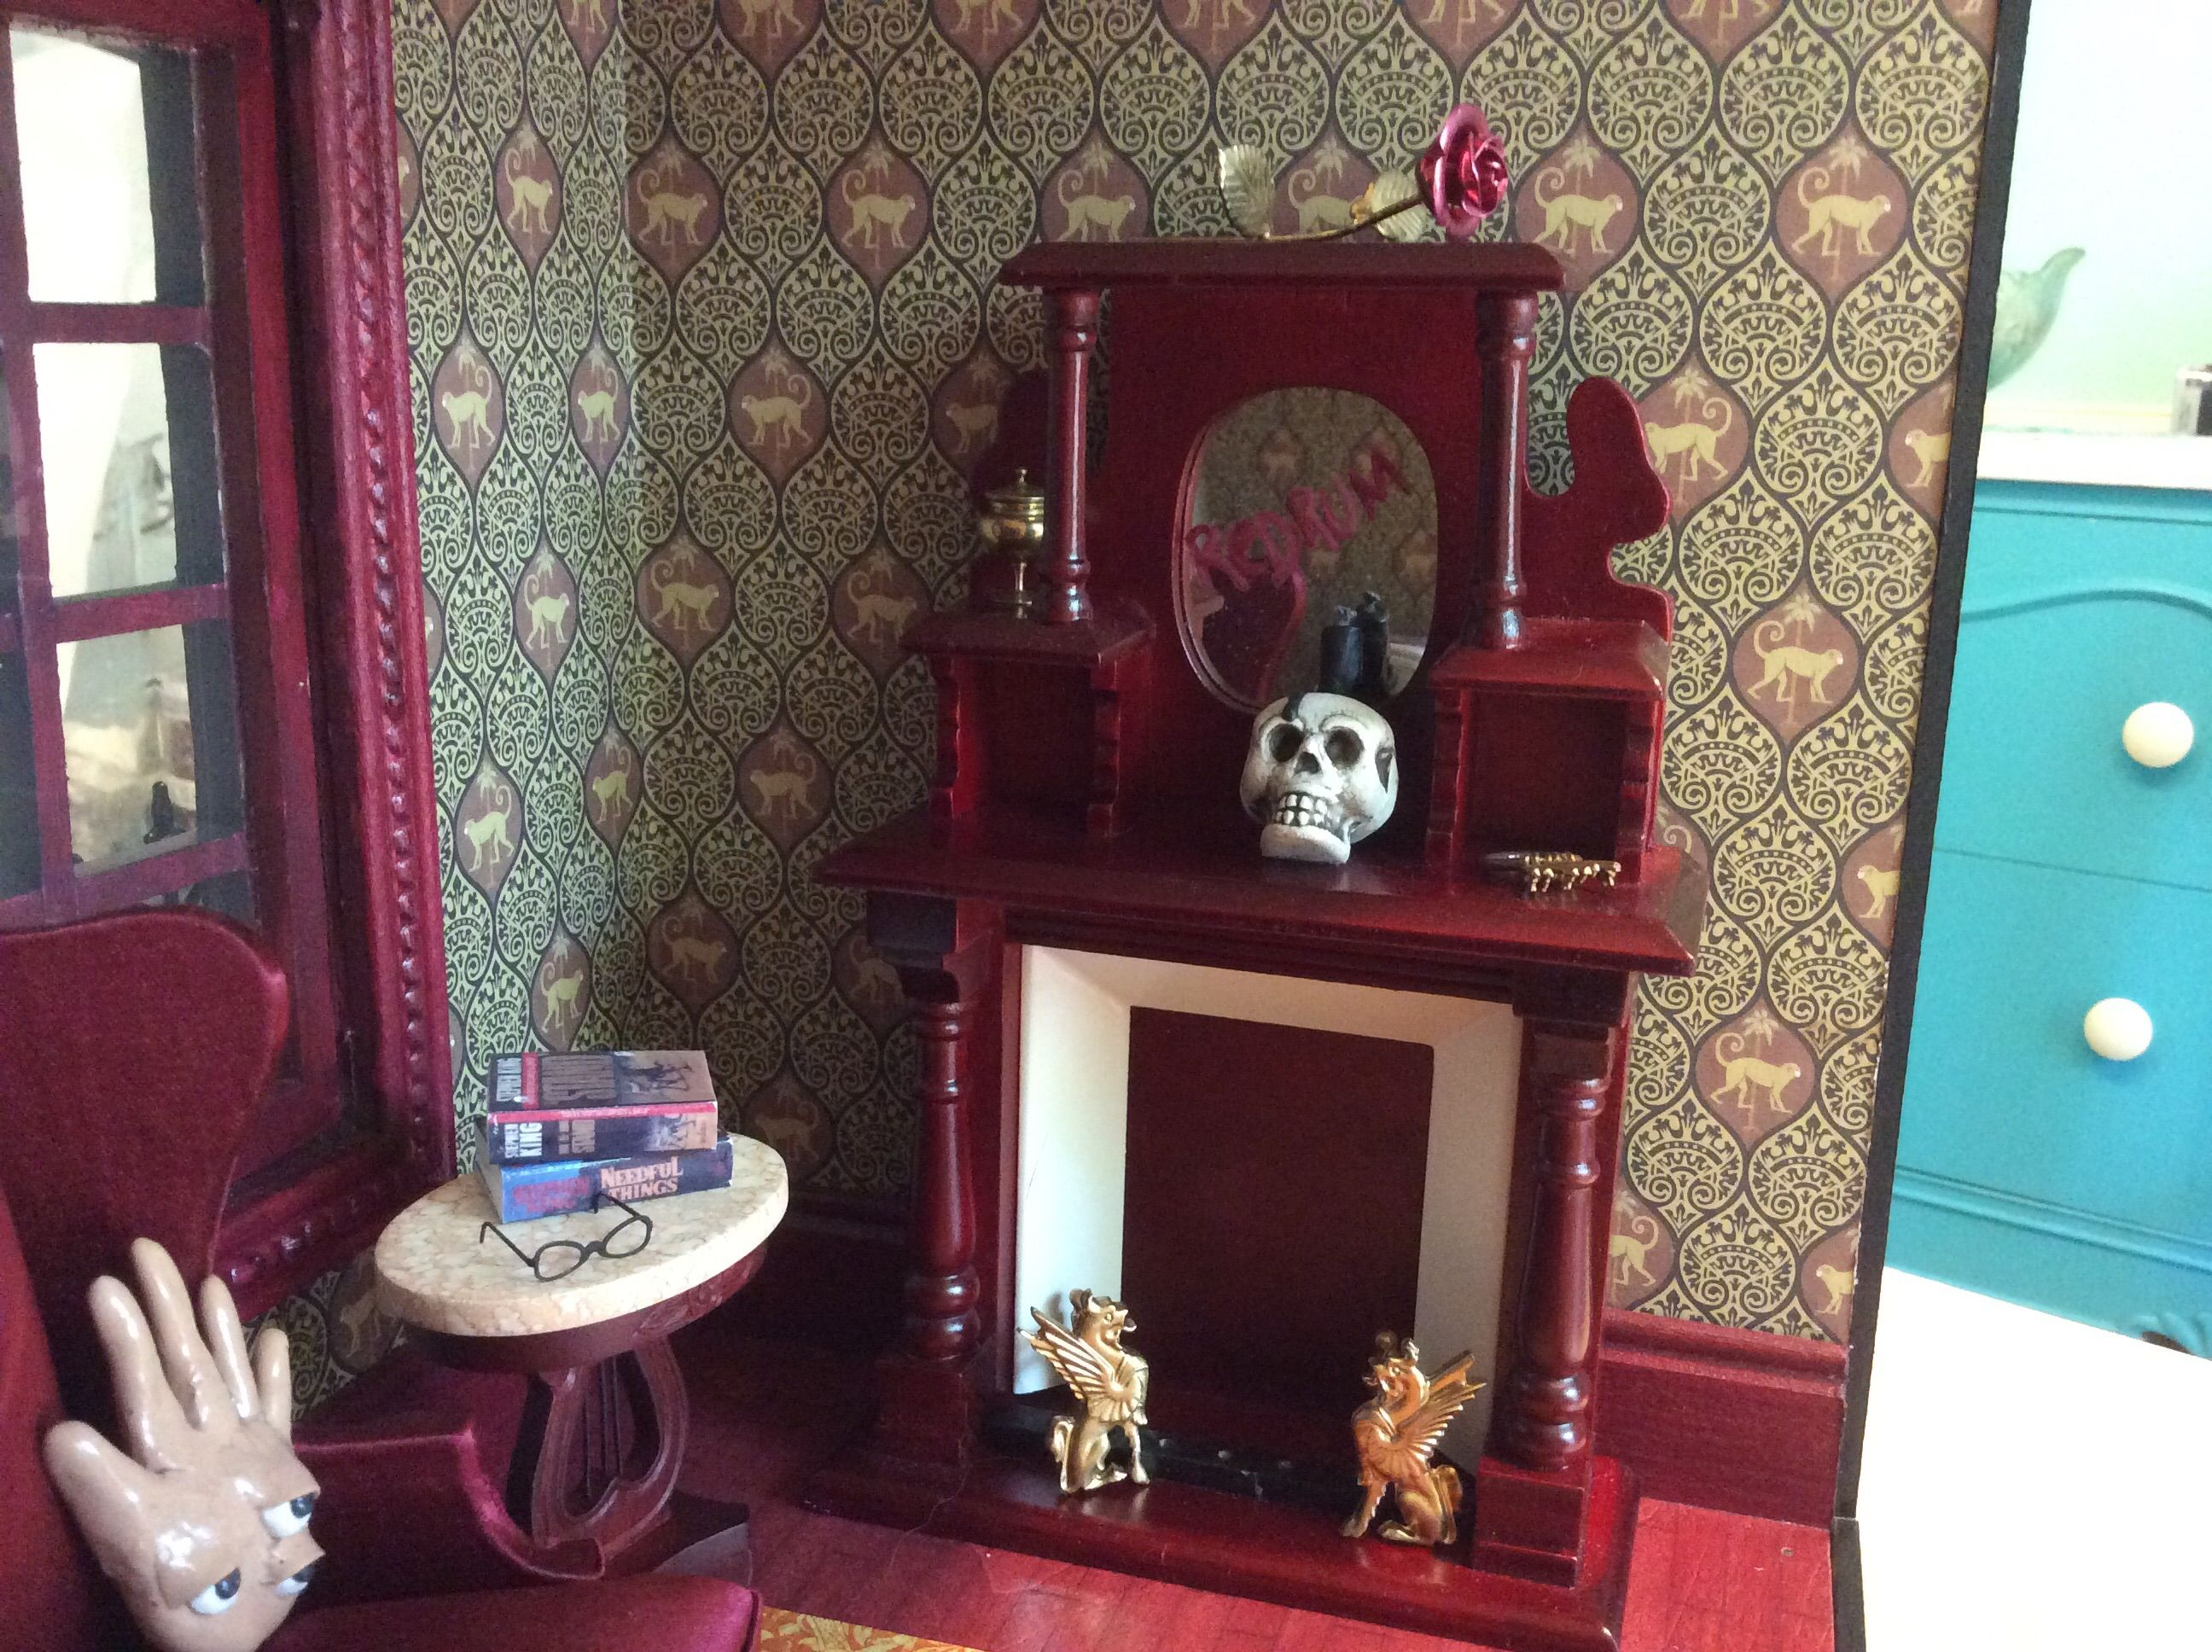 Inside my ode to Stephen King miniature house built by ...